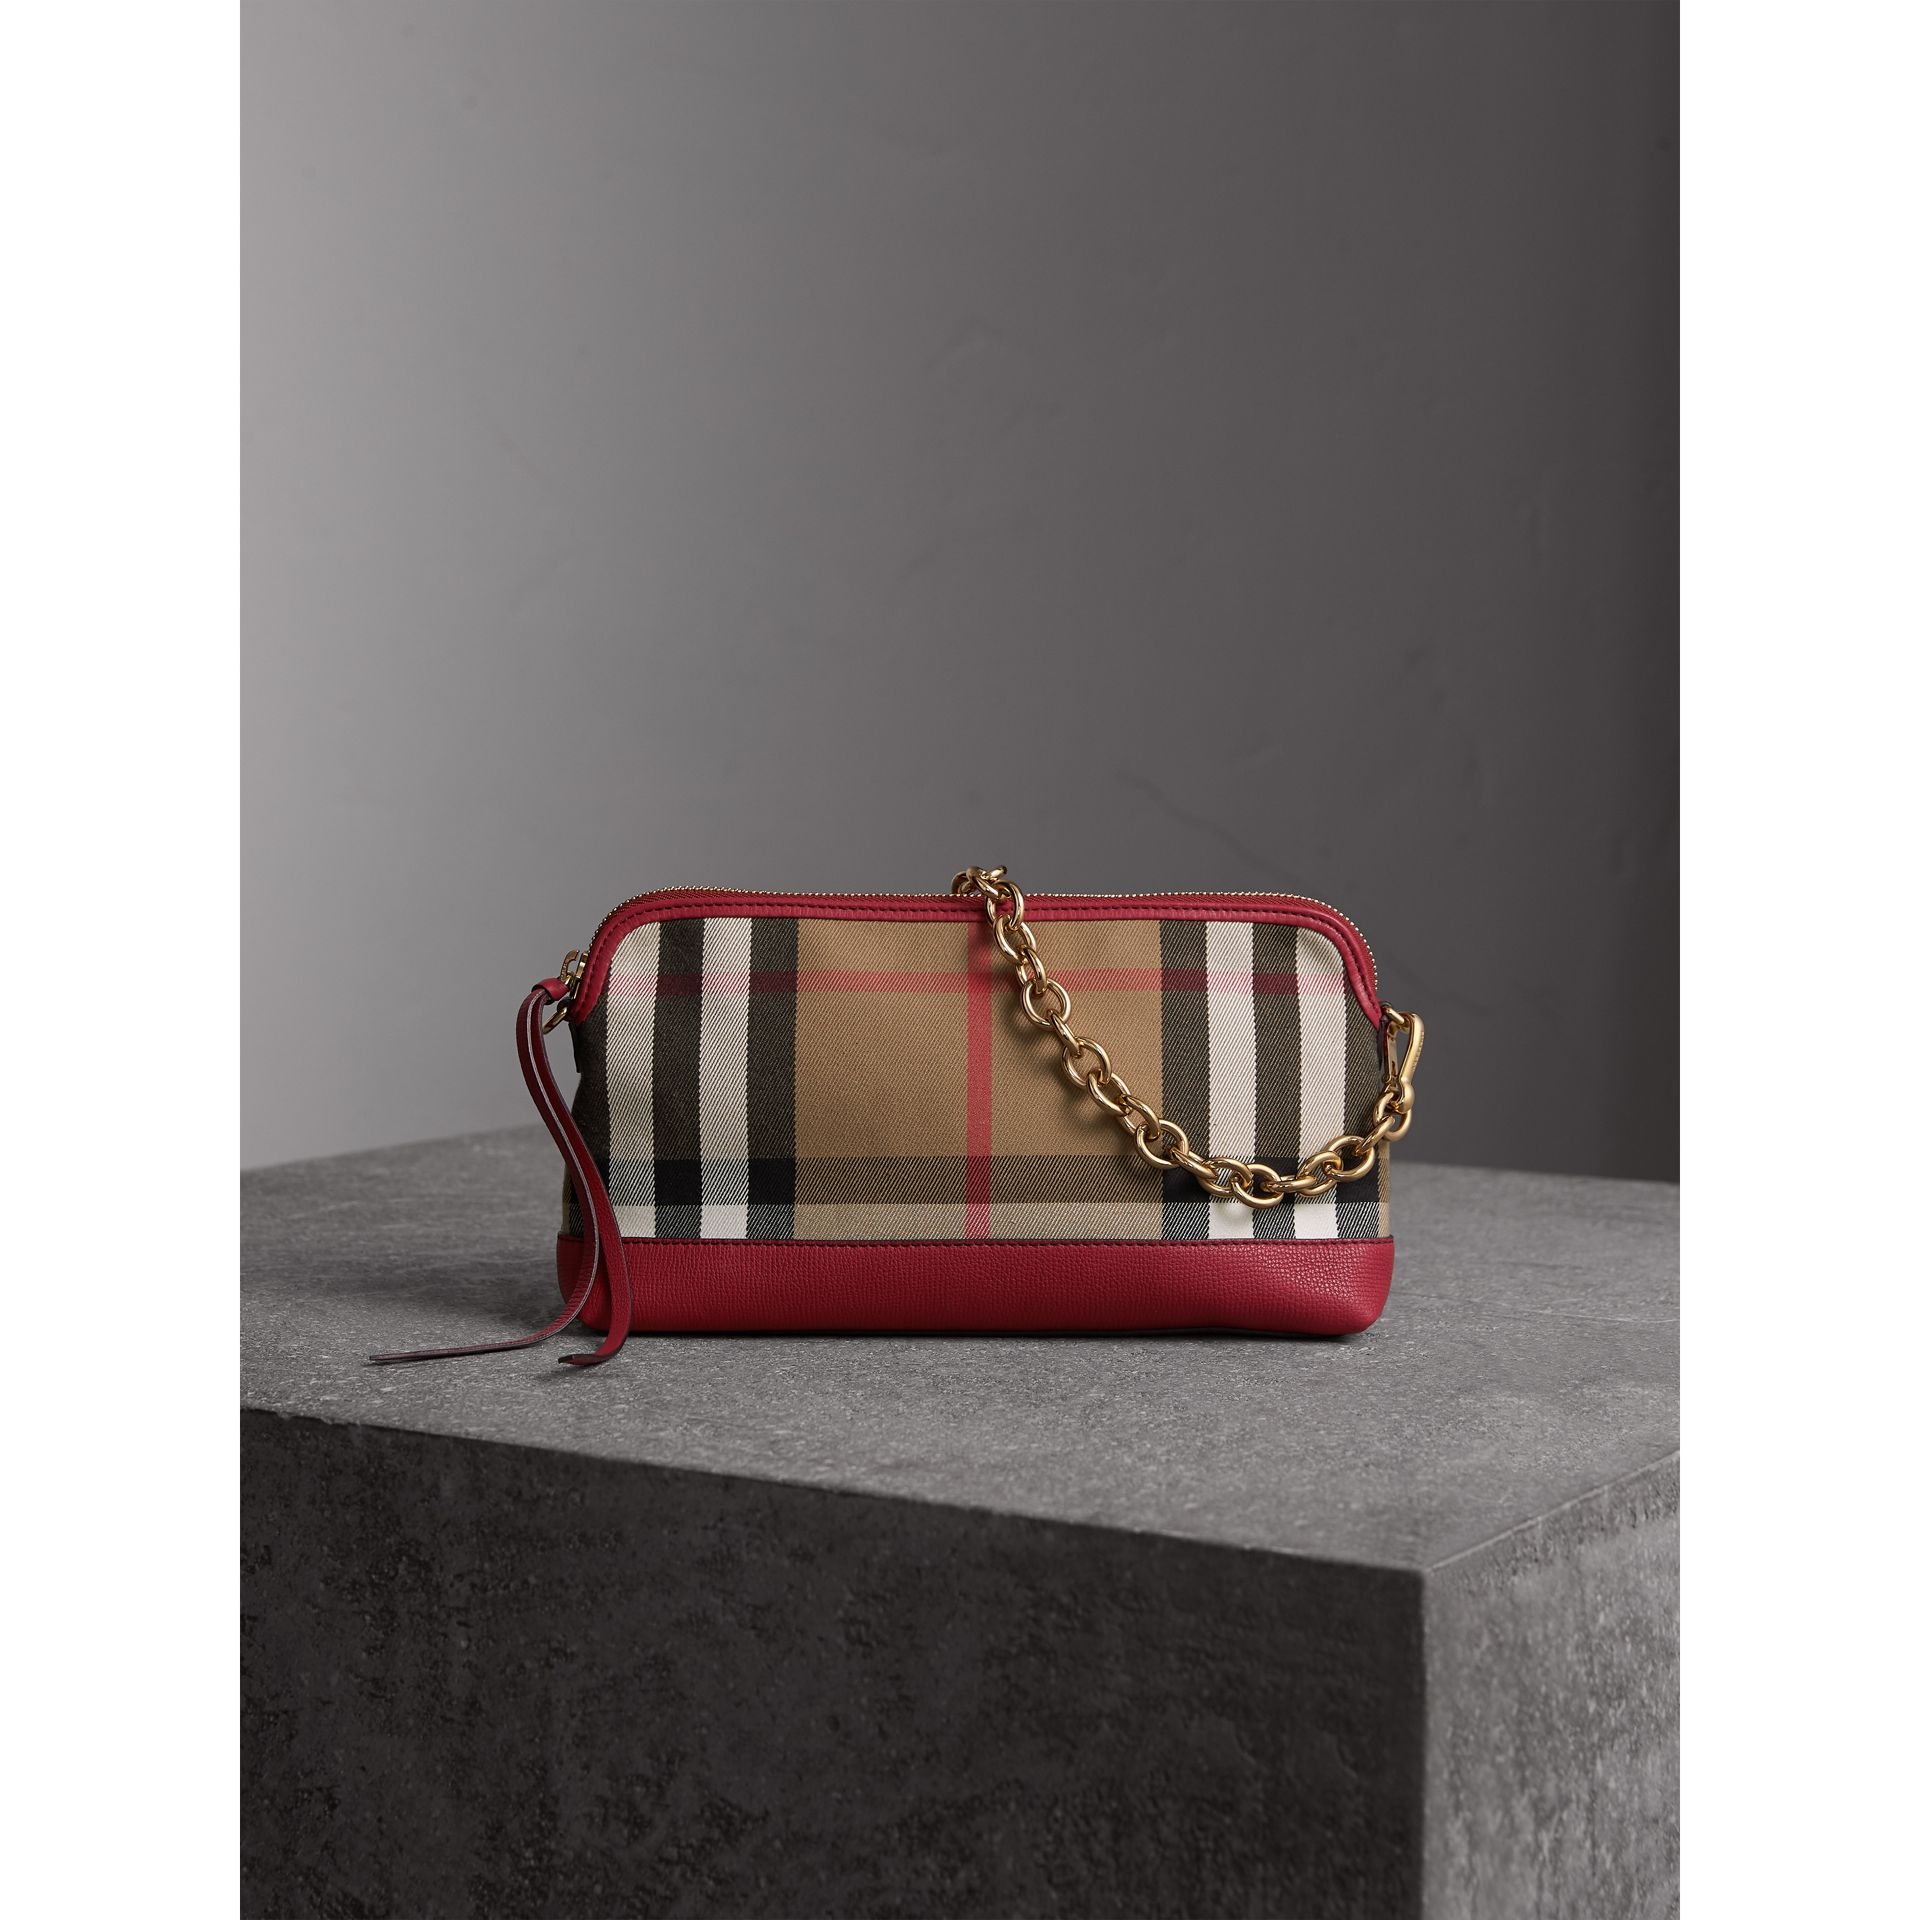 House Check and Leather Clutch Bag in Russet Red - Women | Burberry - gallery image 1